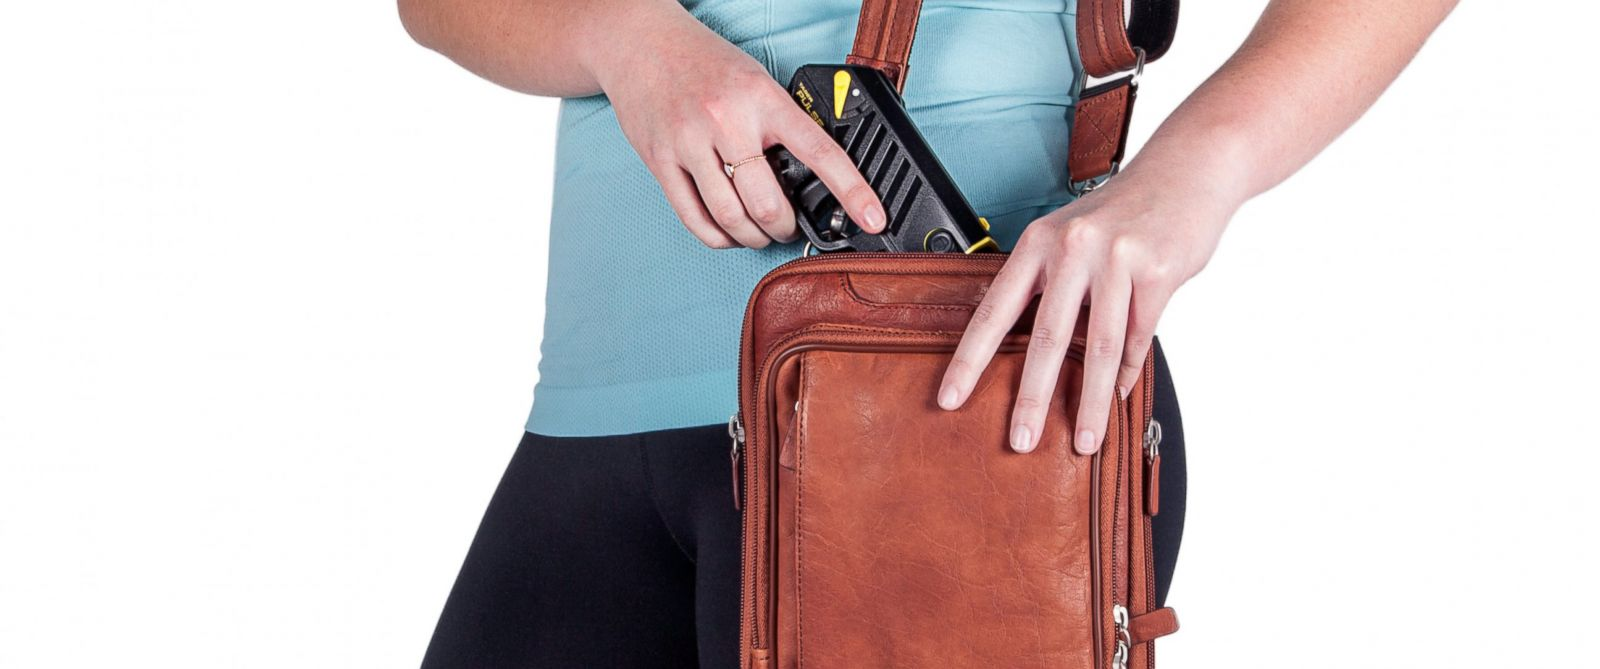 PHOTO:TASER has created a self-defense weapon for civilian use.